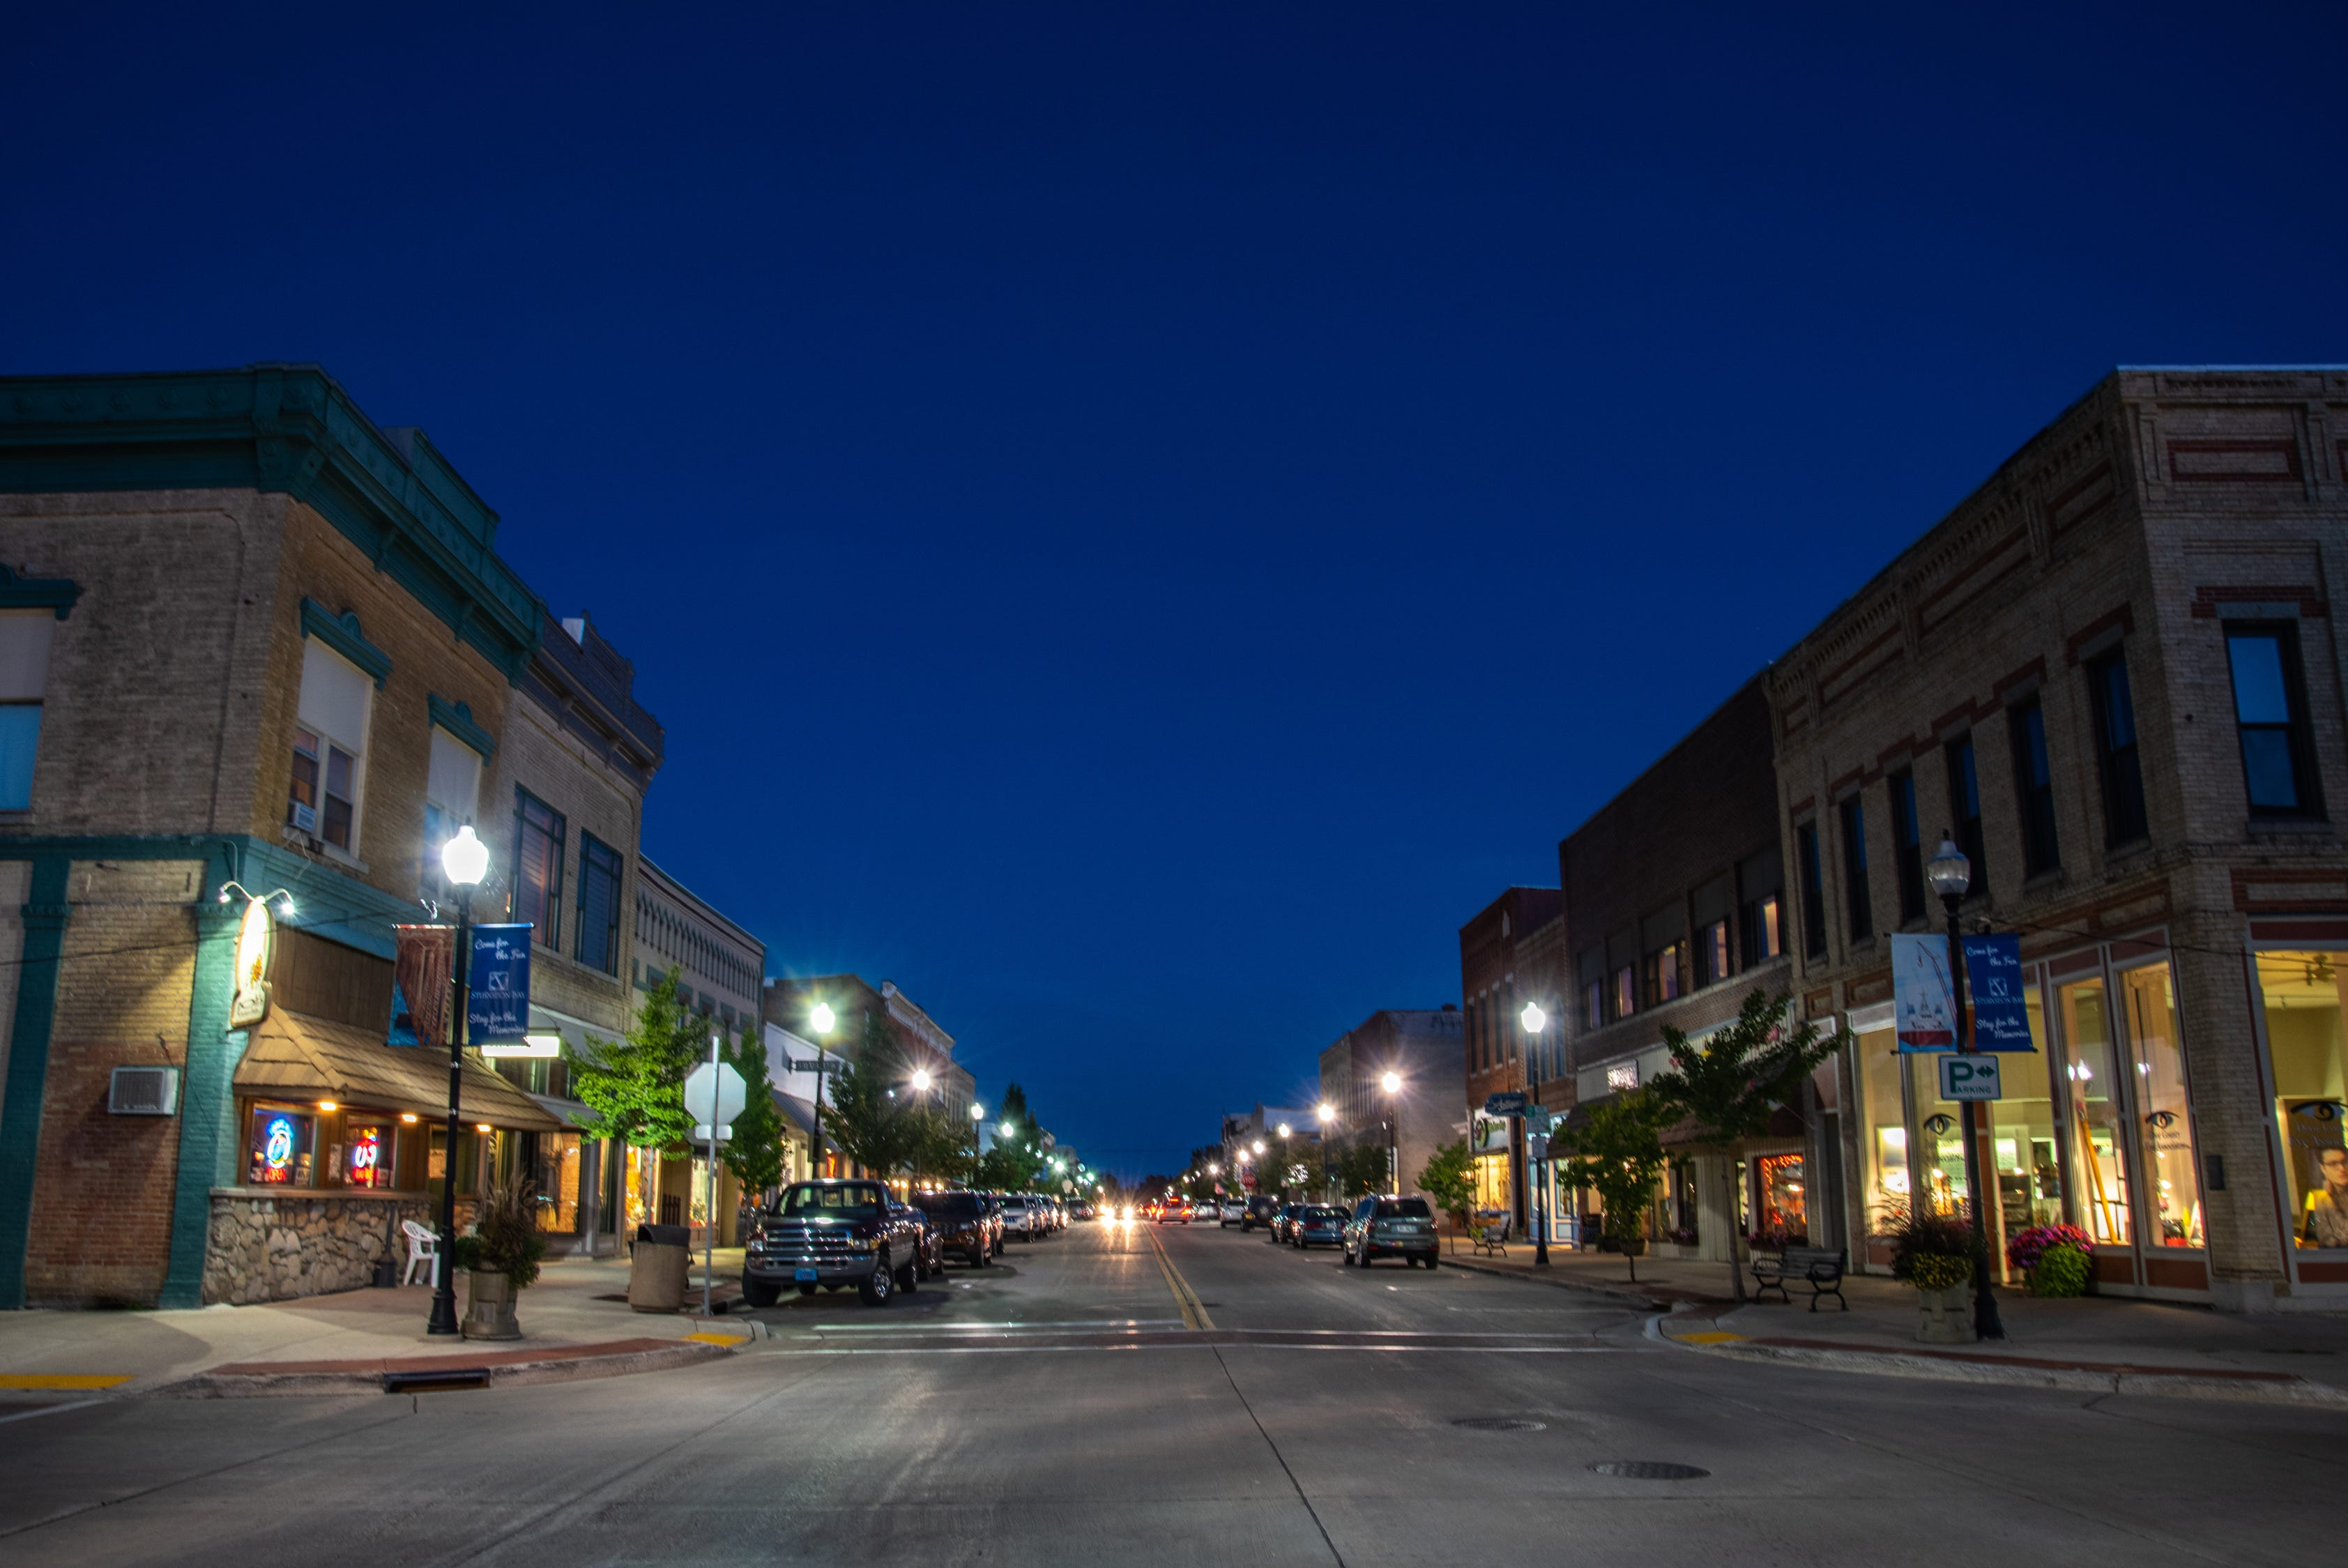 An evening view of historic Third Avenue in Sturgeon Bay, Wisconsin. Sturgeon Bay is the largest city in Door County with a population of about 9,000 people.